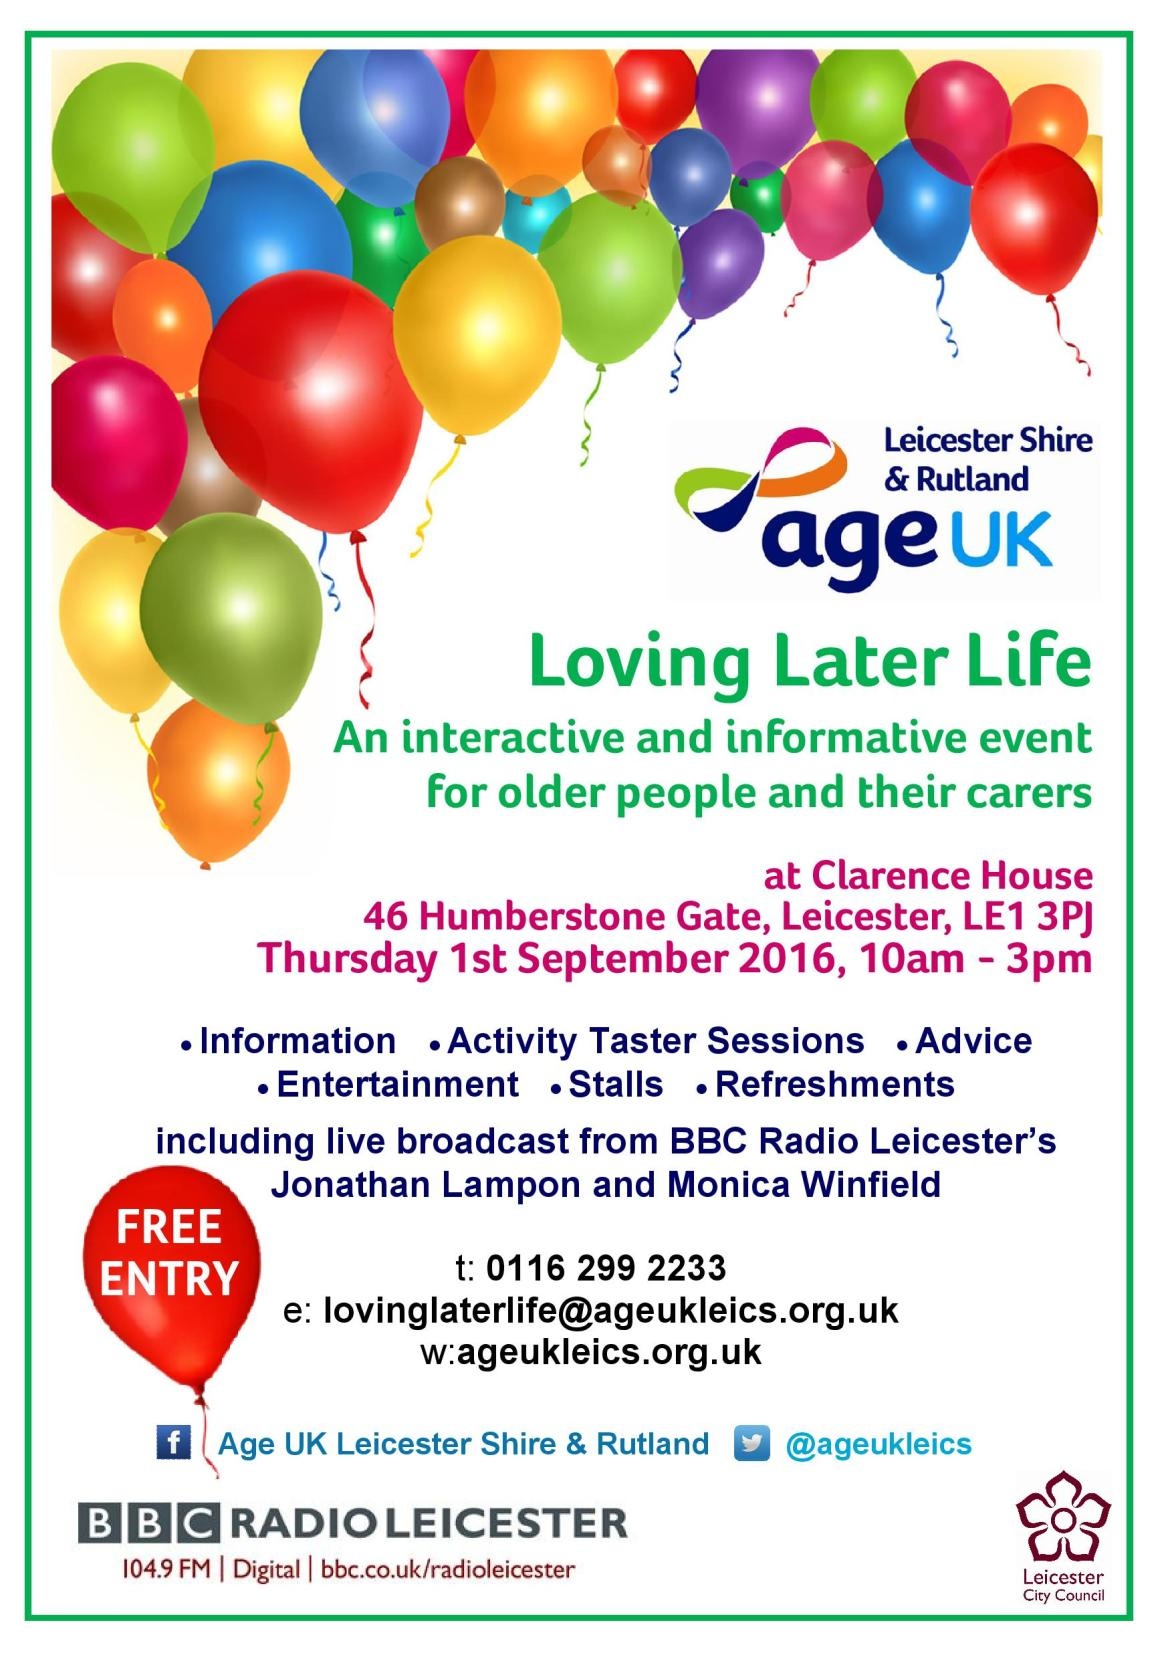 An interactive and informative event for older people and their carers